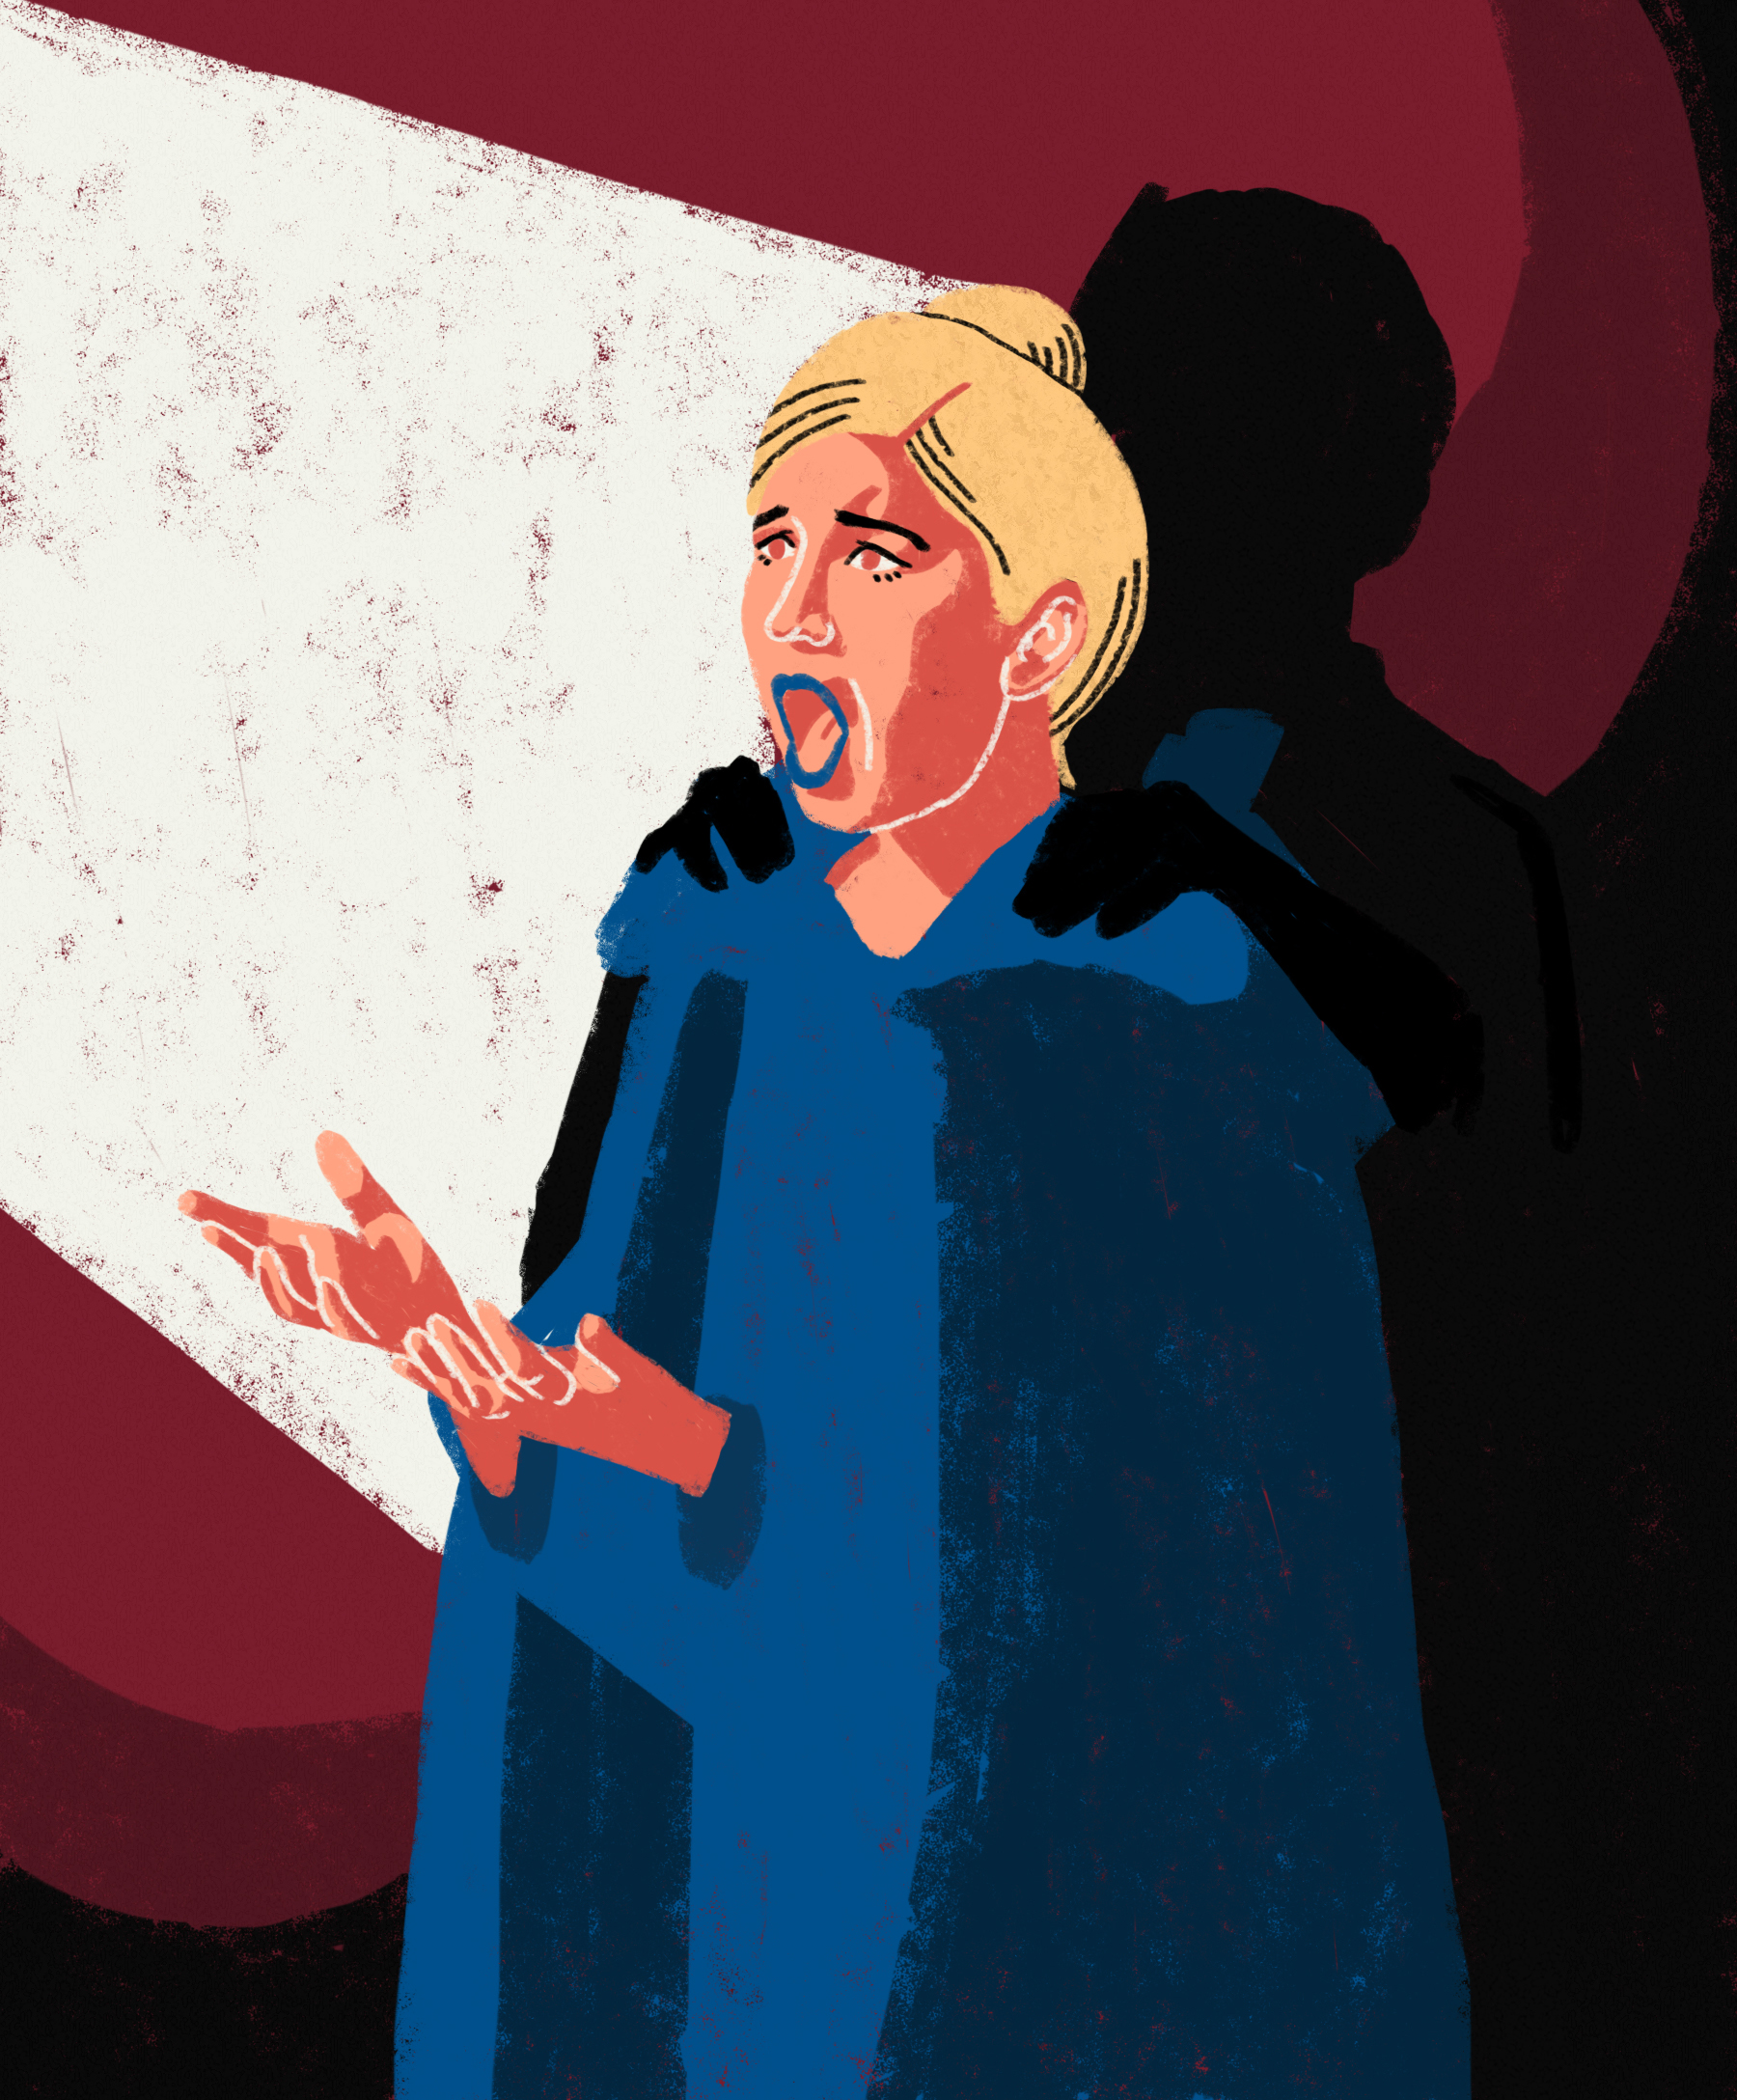 Oper Illustration, Mariella Lehner